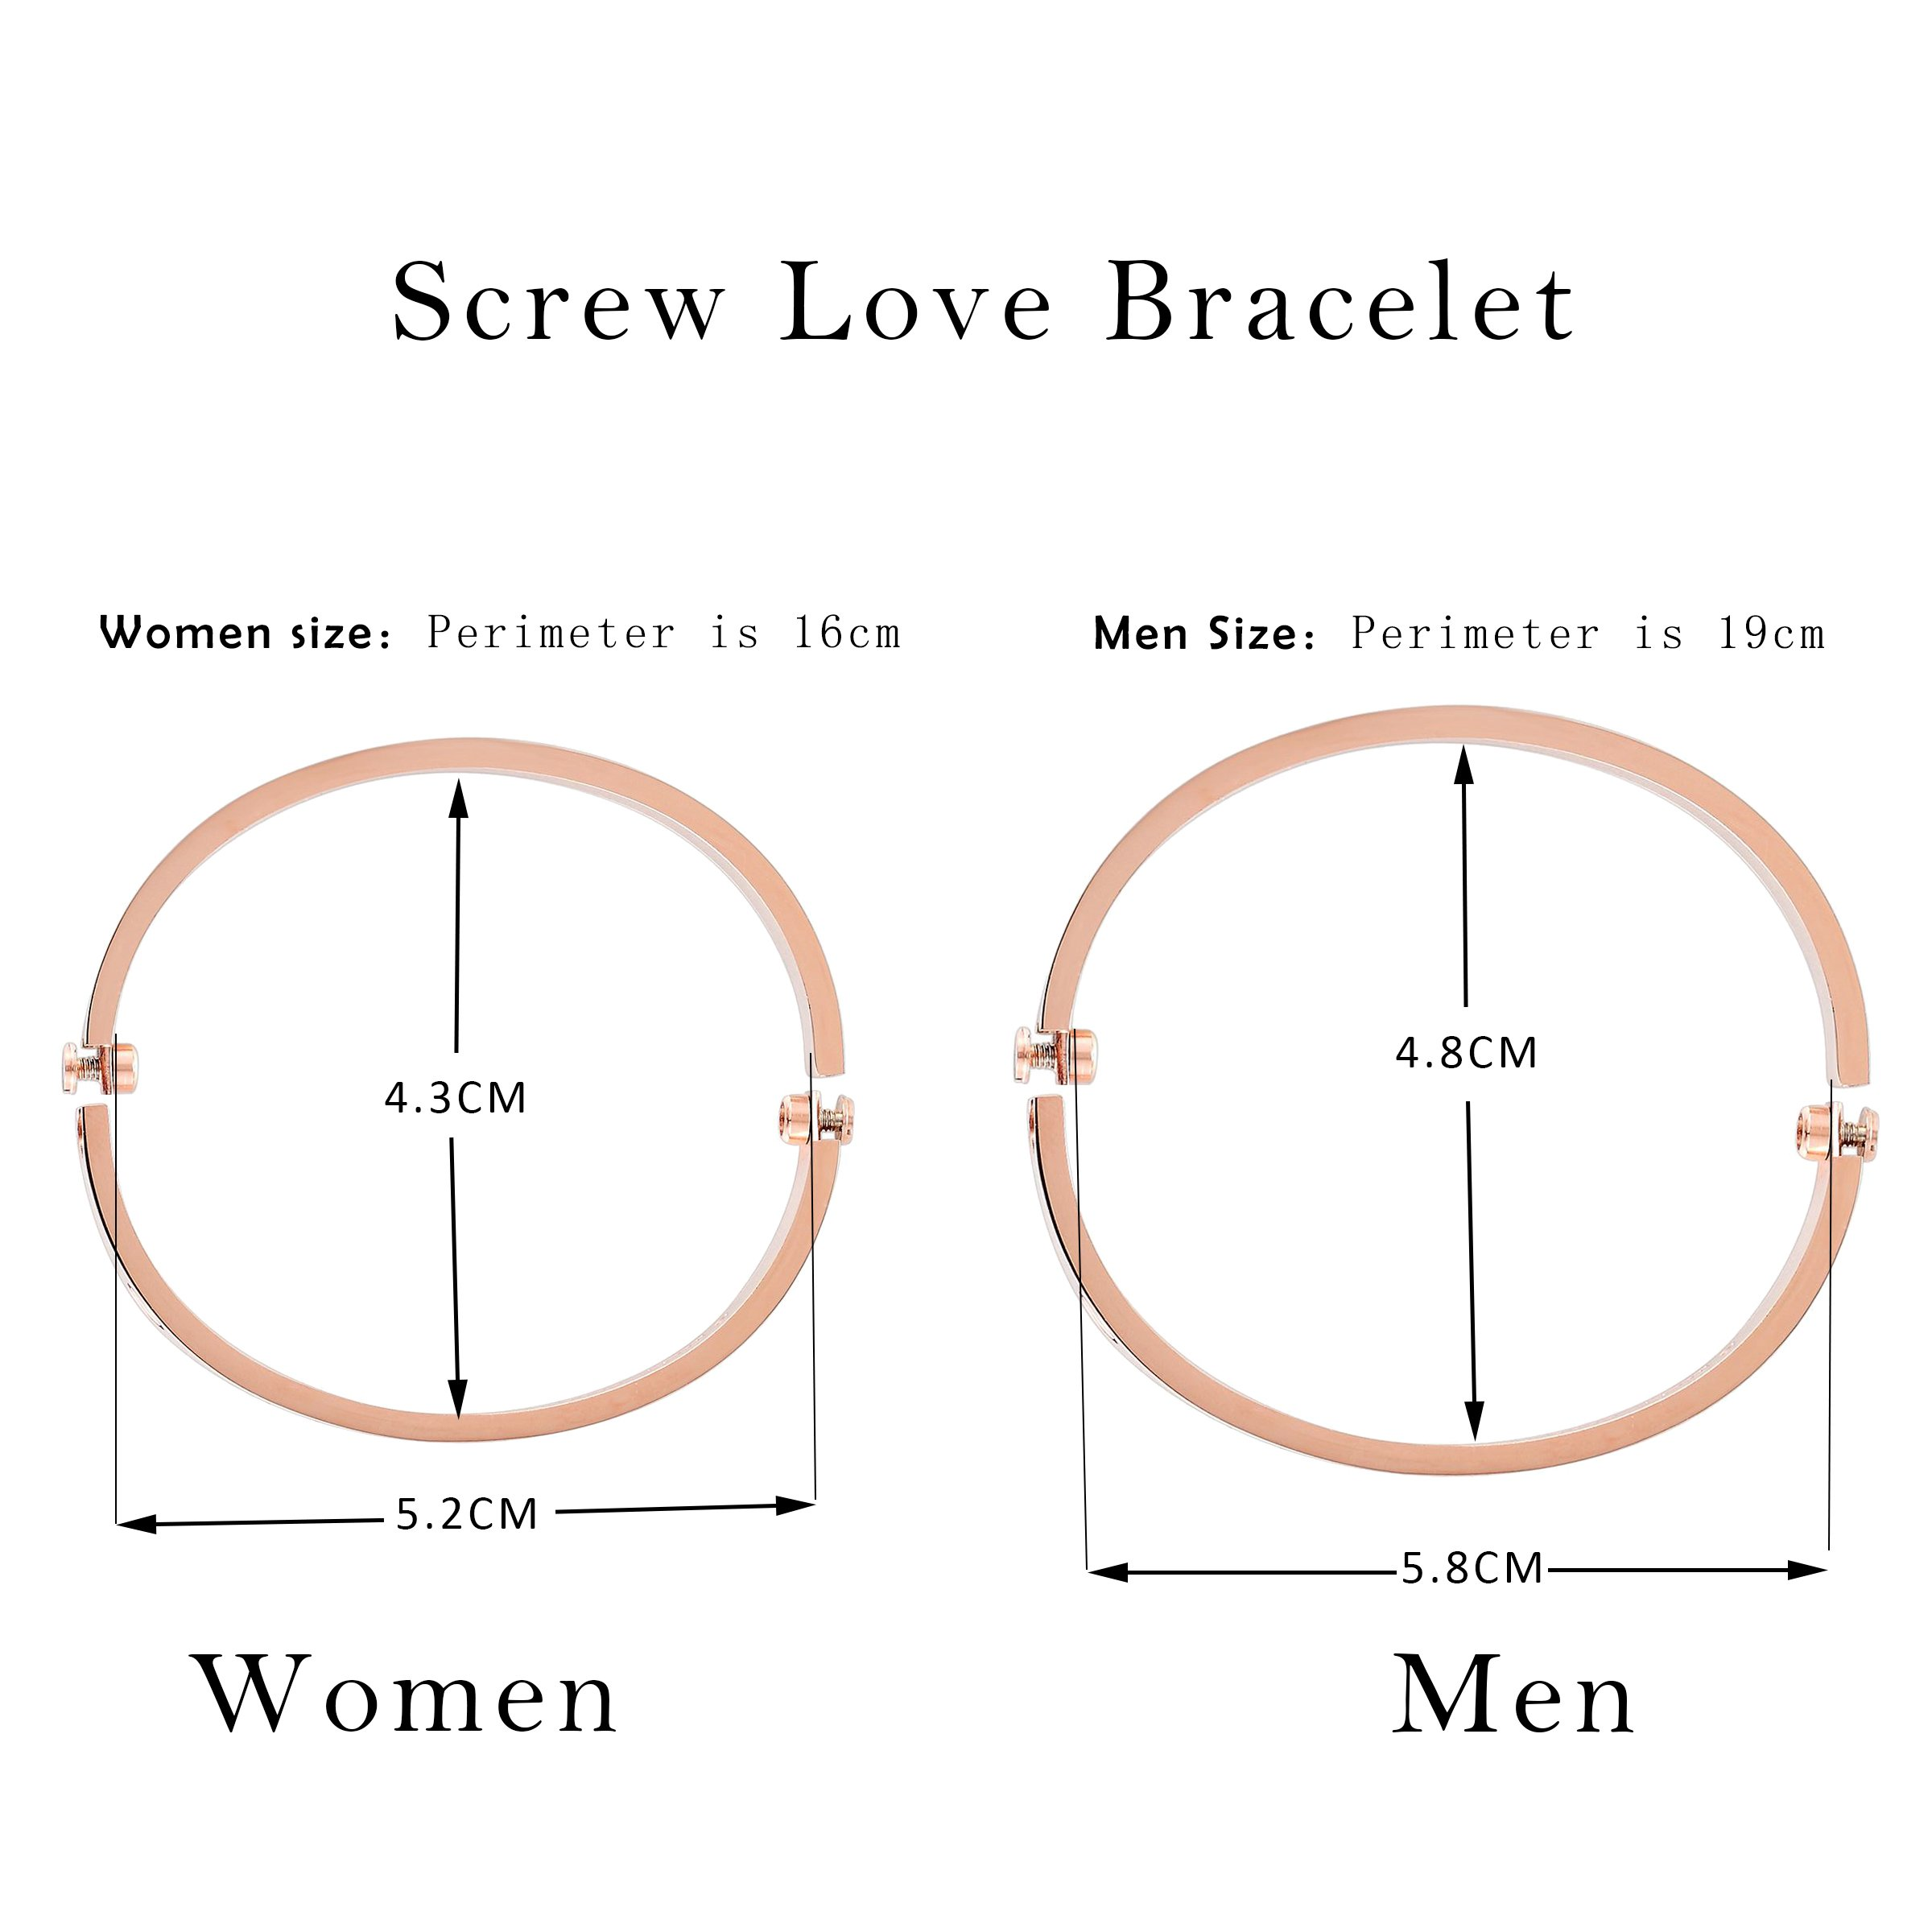 Z.RACLE Love Bangle Bracelet Stainless Steel with Screw - Best Gift for Love - 6.3IN Rose Gold CZ by Z.RACLE (Image #4)